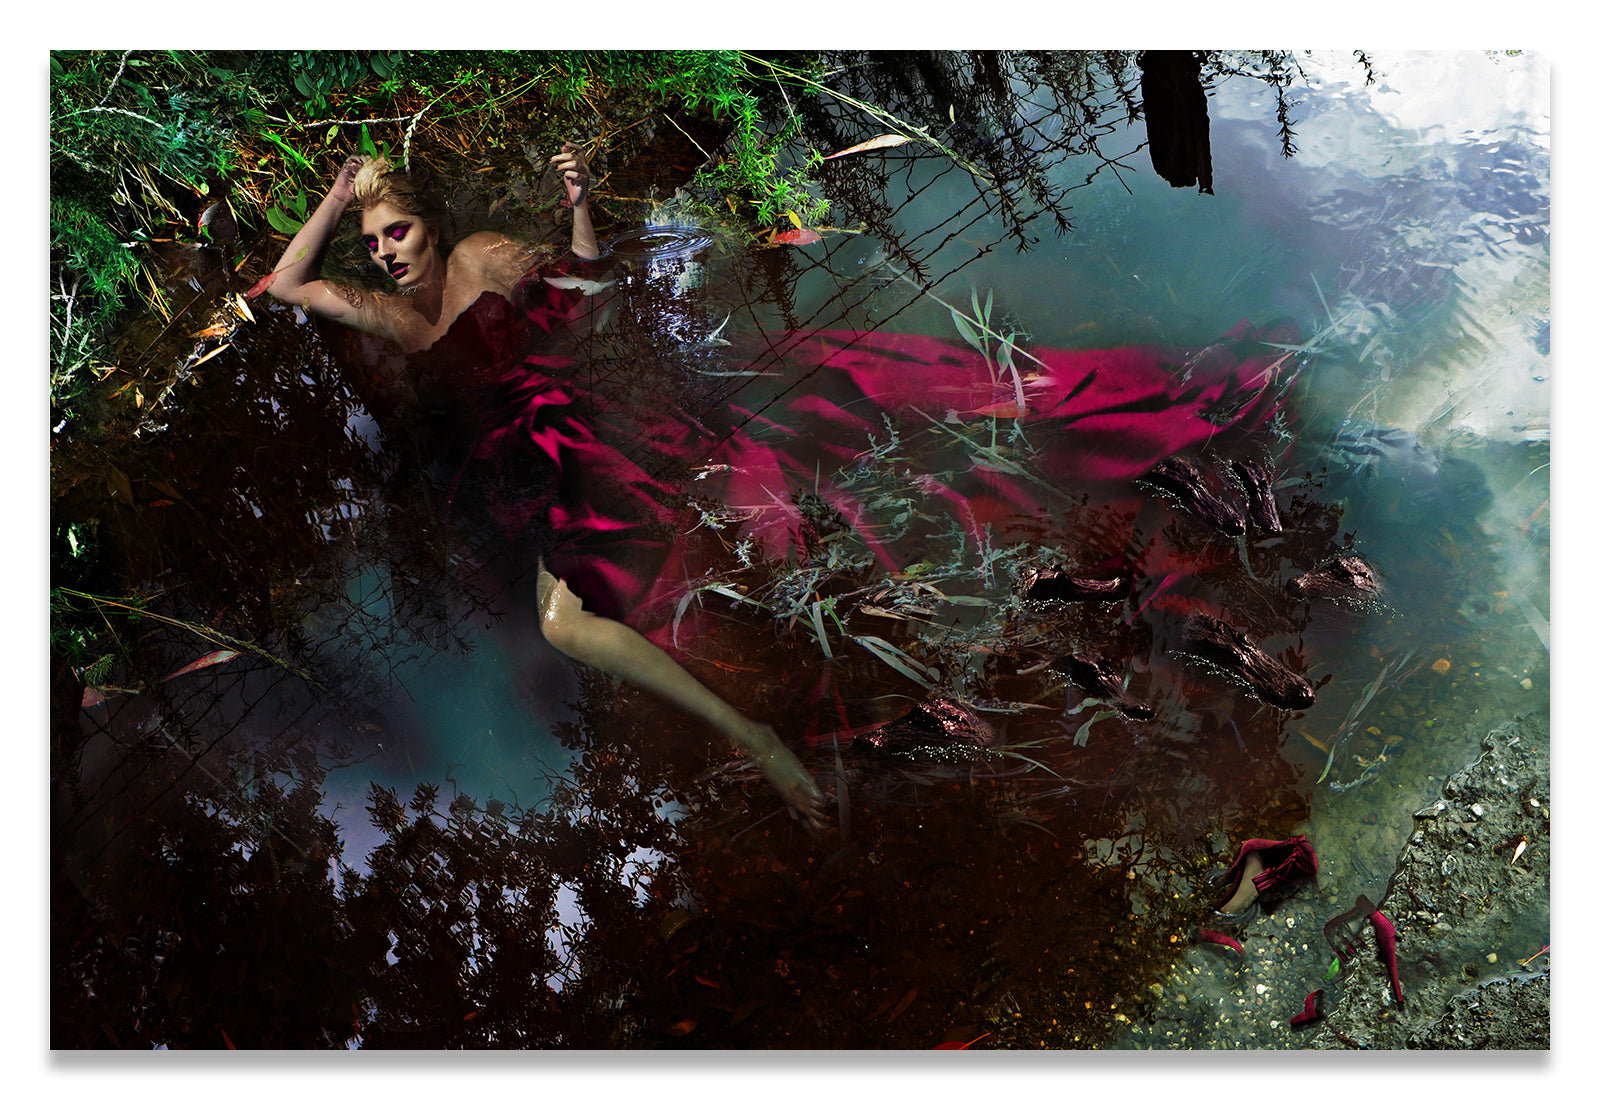 Woman in a Crimson Red Ballgown Swimming With Alligators.